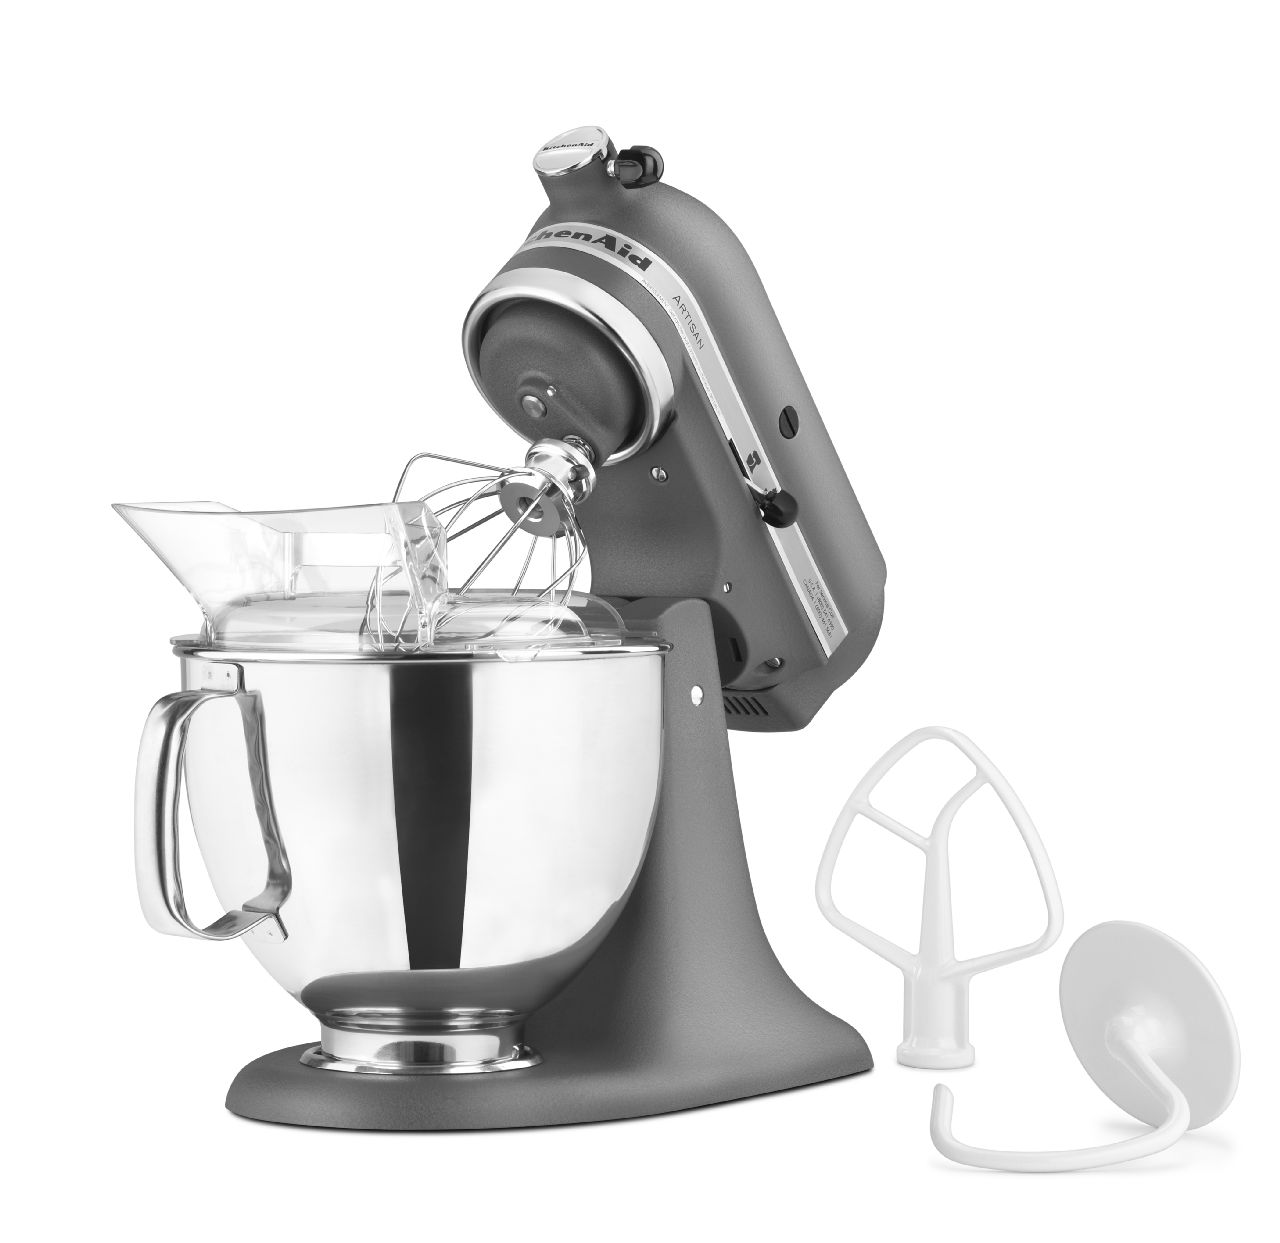 Kitchenaid Artisan Series 5 Quart Tilt Head Stand Mixer Ebay